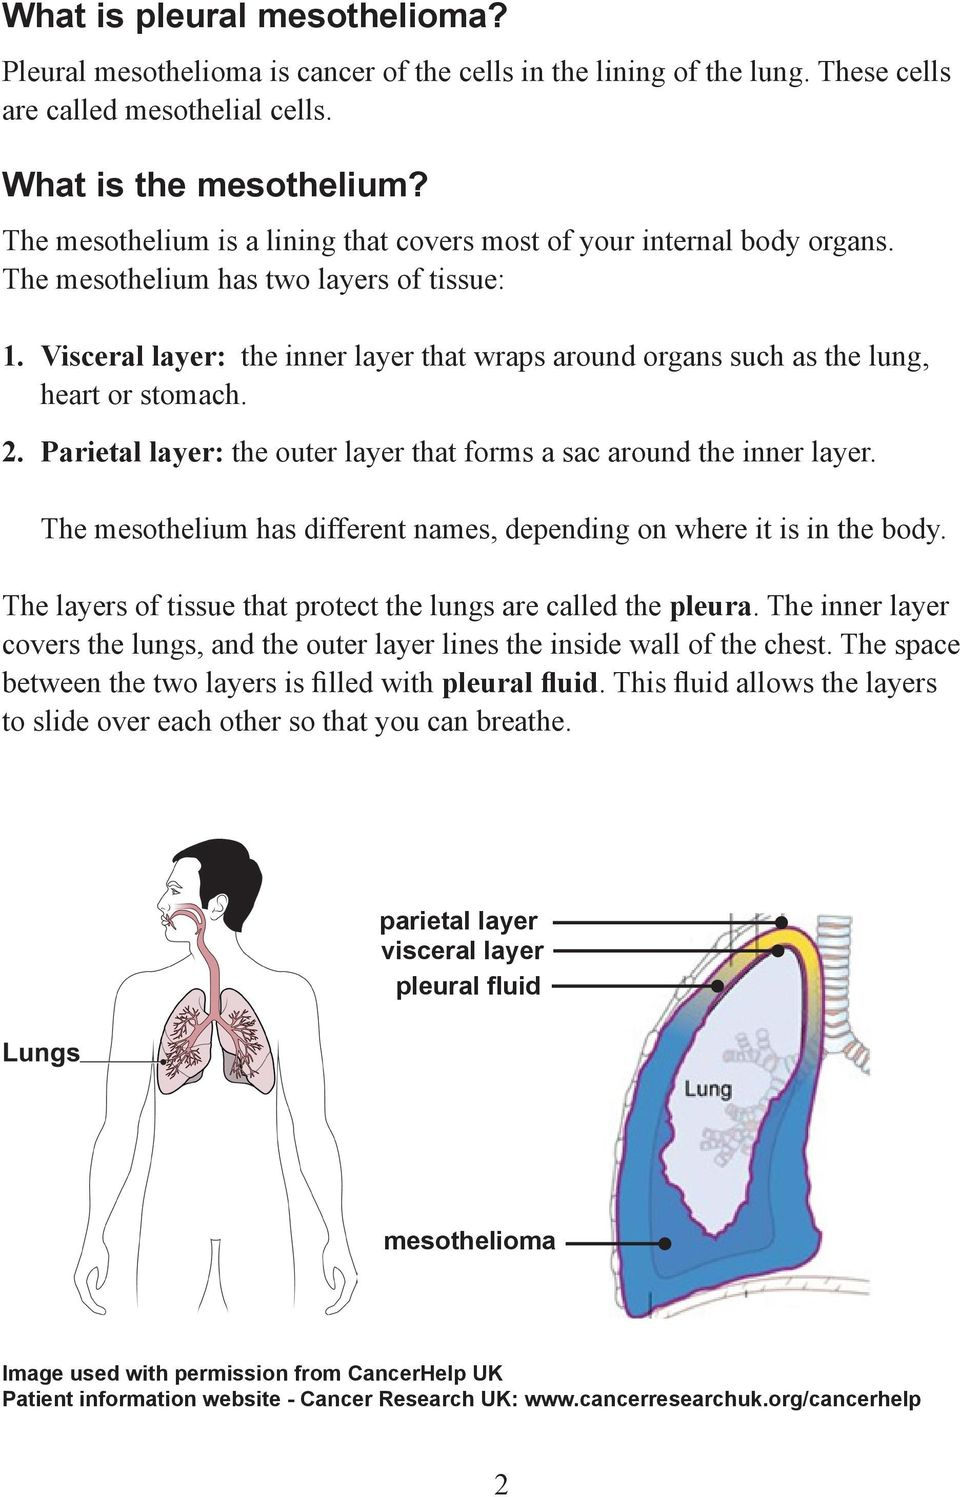 Visceral layer: the inner layer that wraps around organs such as the lung, heart or stomach. 2. Parietal layer: the outer layer that forms a sac around the inner layer.